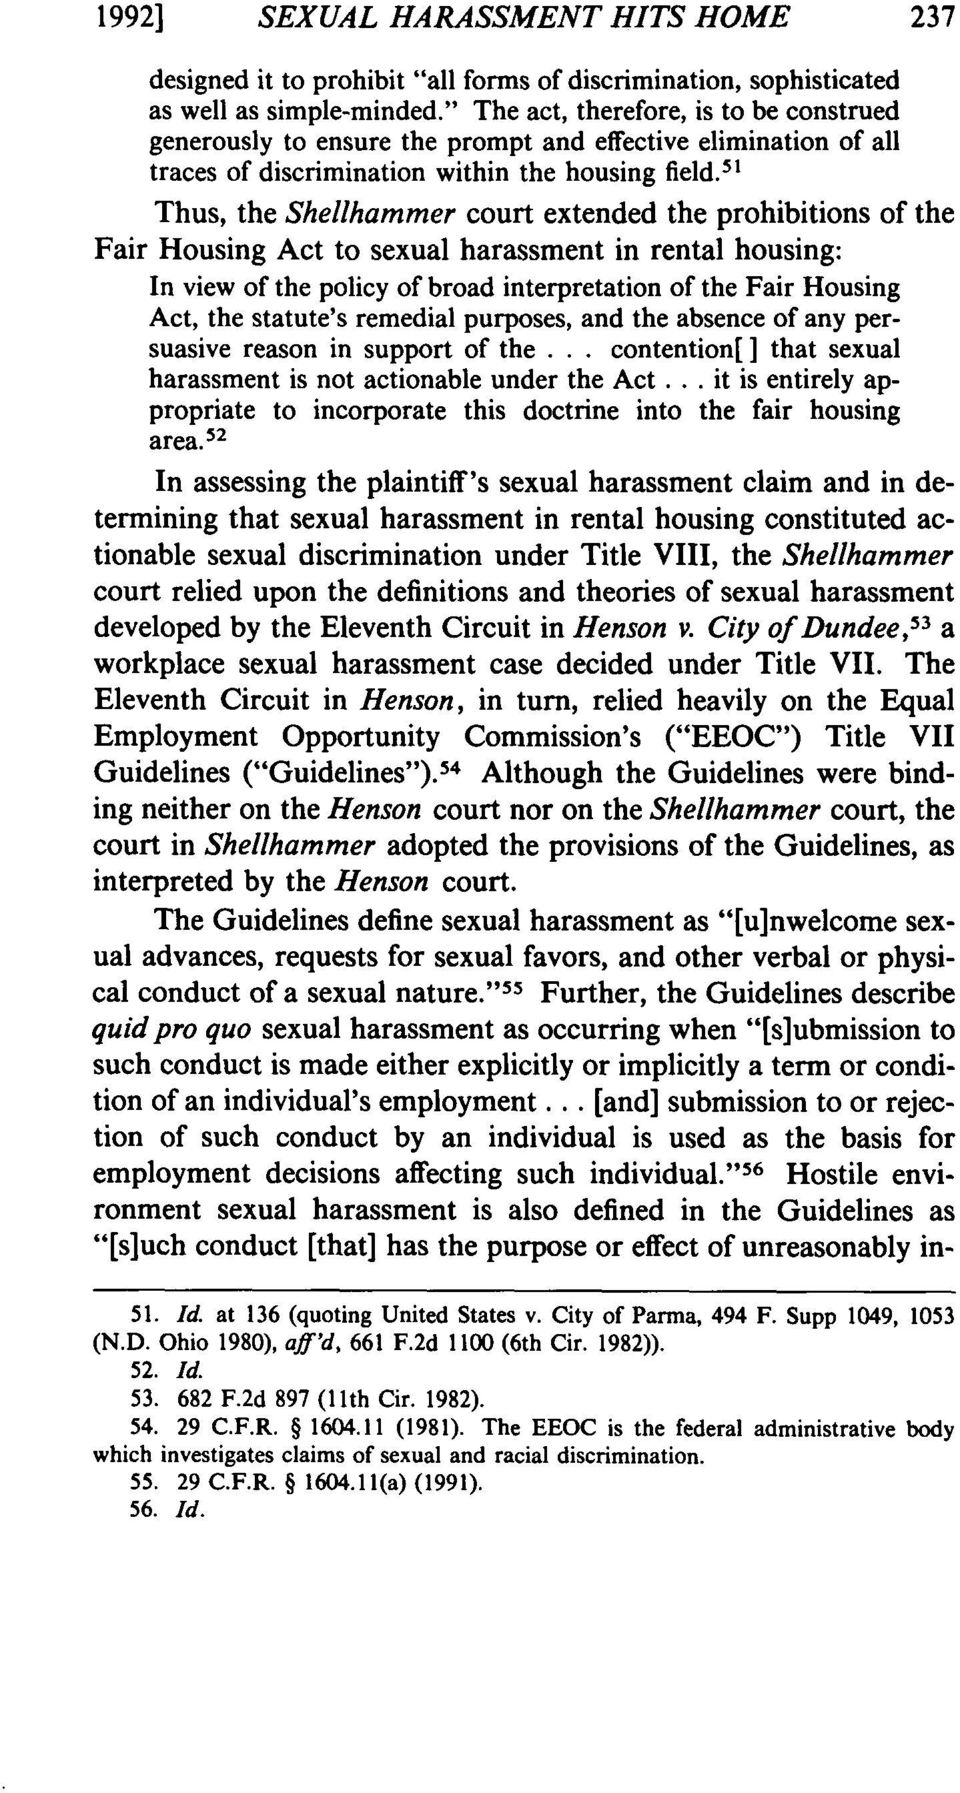 51 Thus, the Shellhammer court extended the prohibitions of the Fair Housing Act to sexual harassment in rental housing: In view of the policy of broad interpretation of the Fair Housing Act, the